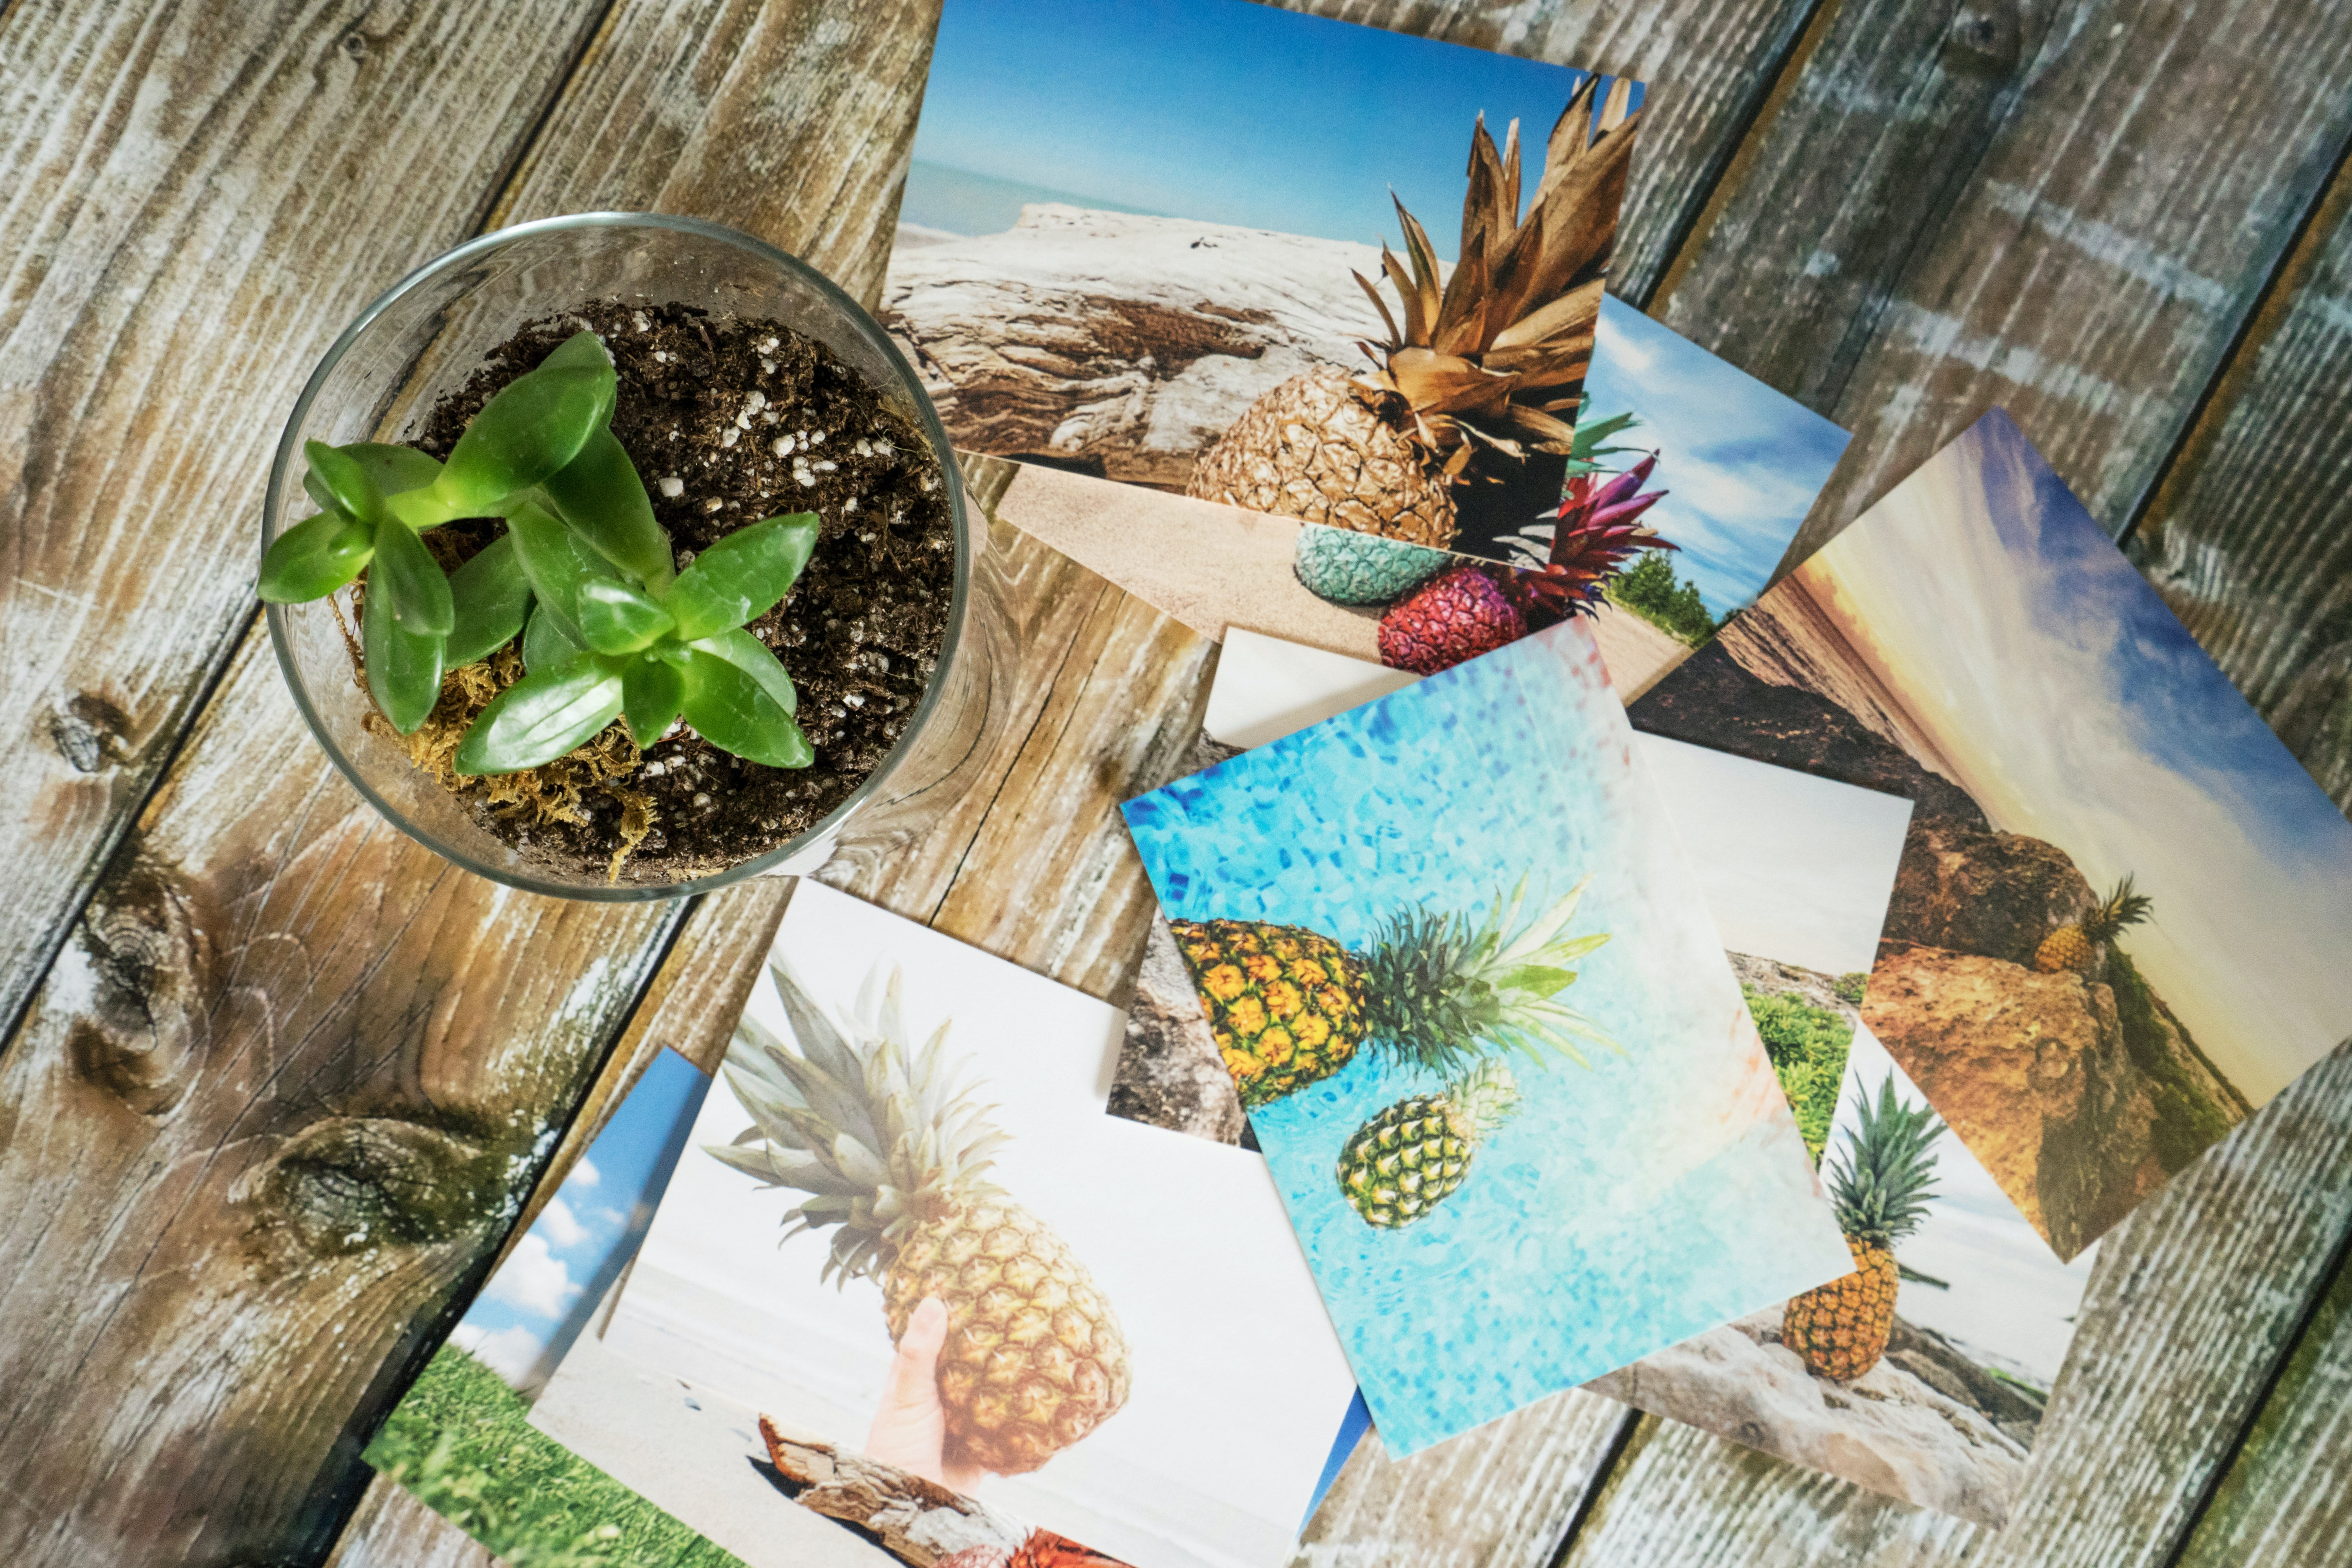 Scattered photo prints on a wooden table.